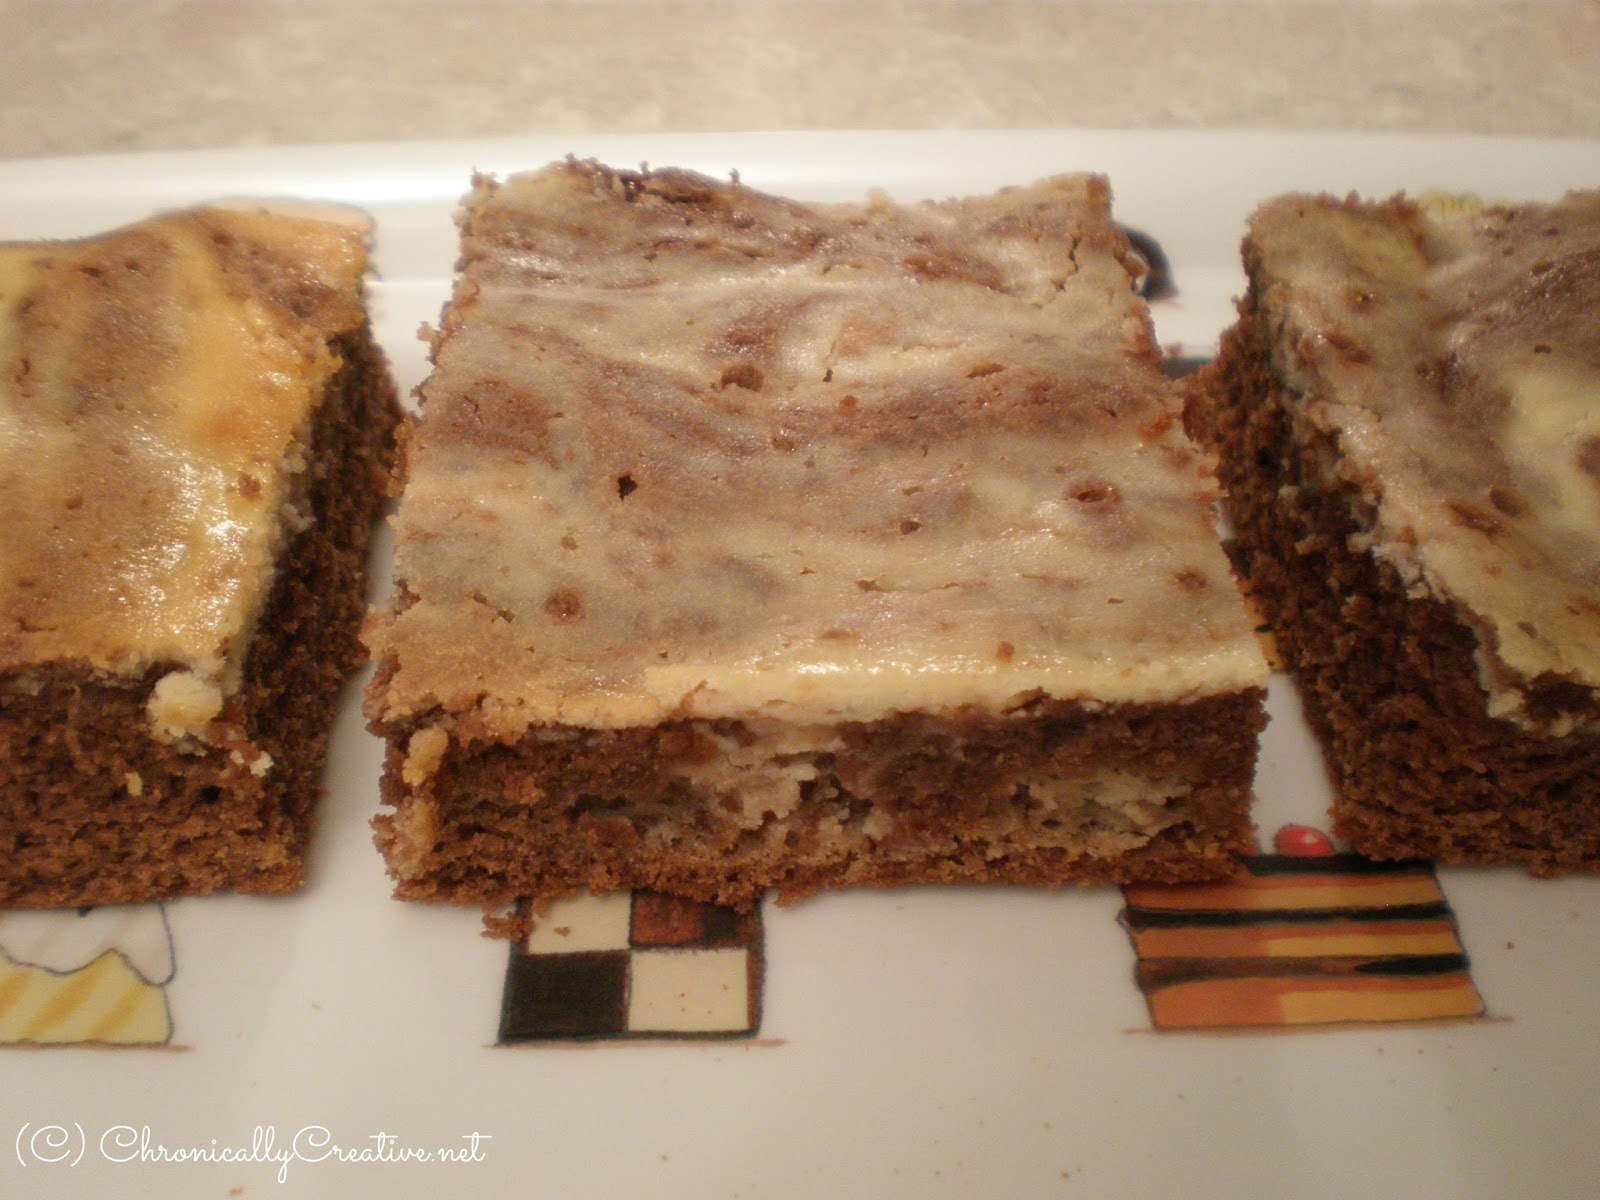 ... cheesecake ricotta cheesecake marbled ricotta cheesecake brownies